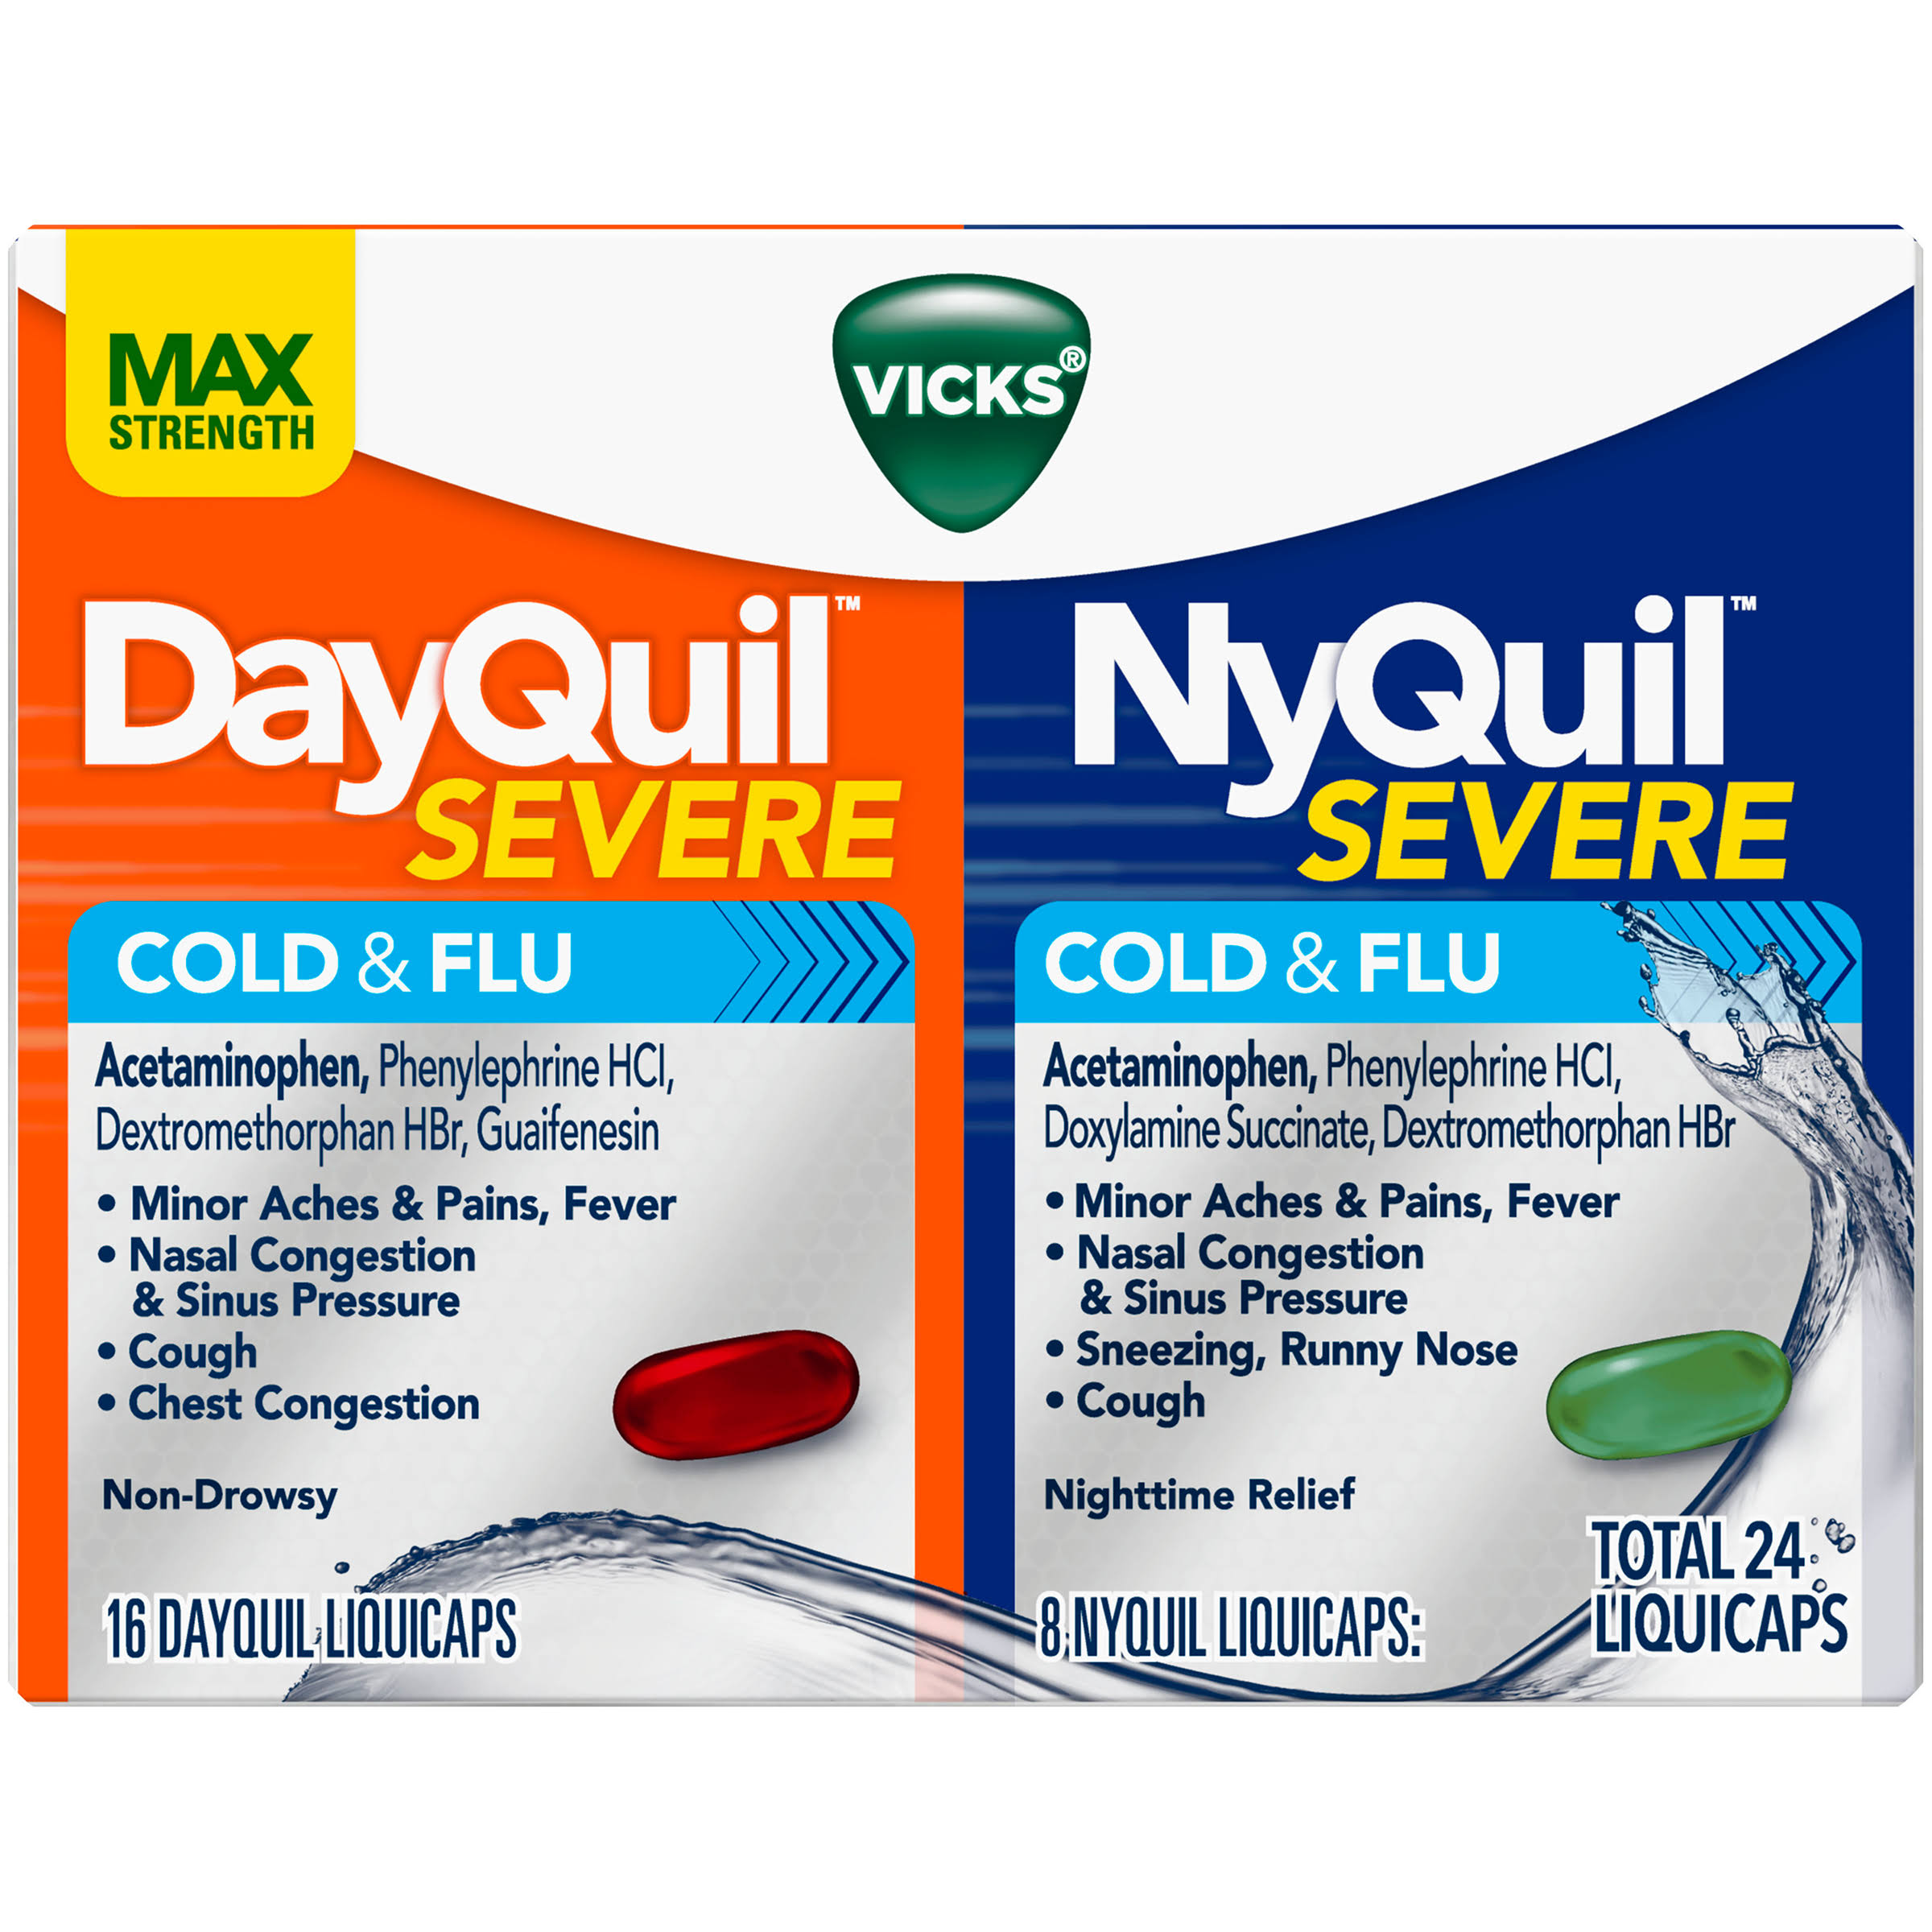 Vicks DayQuil Severe, NyQuil Severe, Cold & Flu, LiquiCaps - 24 liquicaps